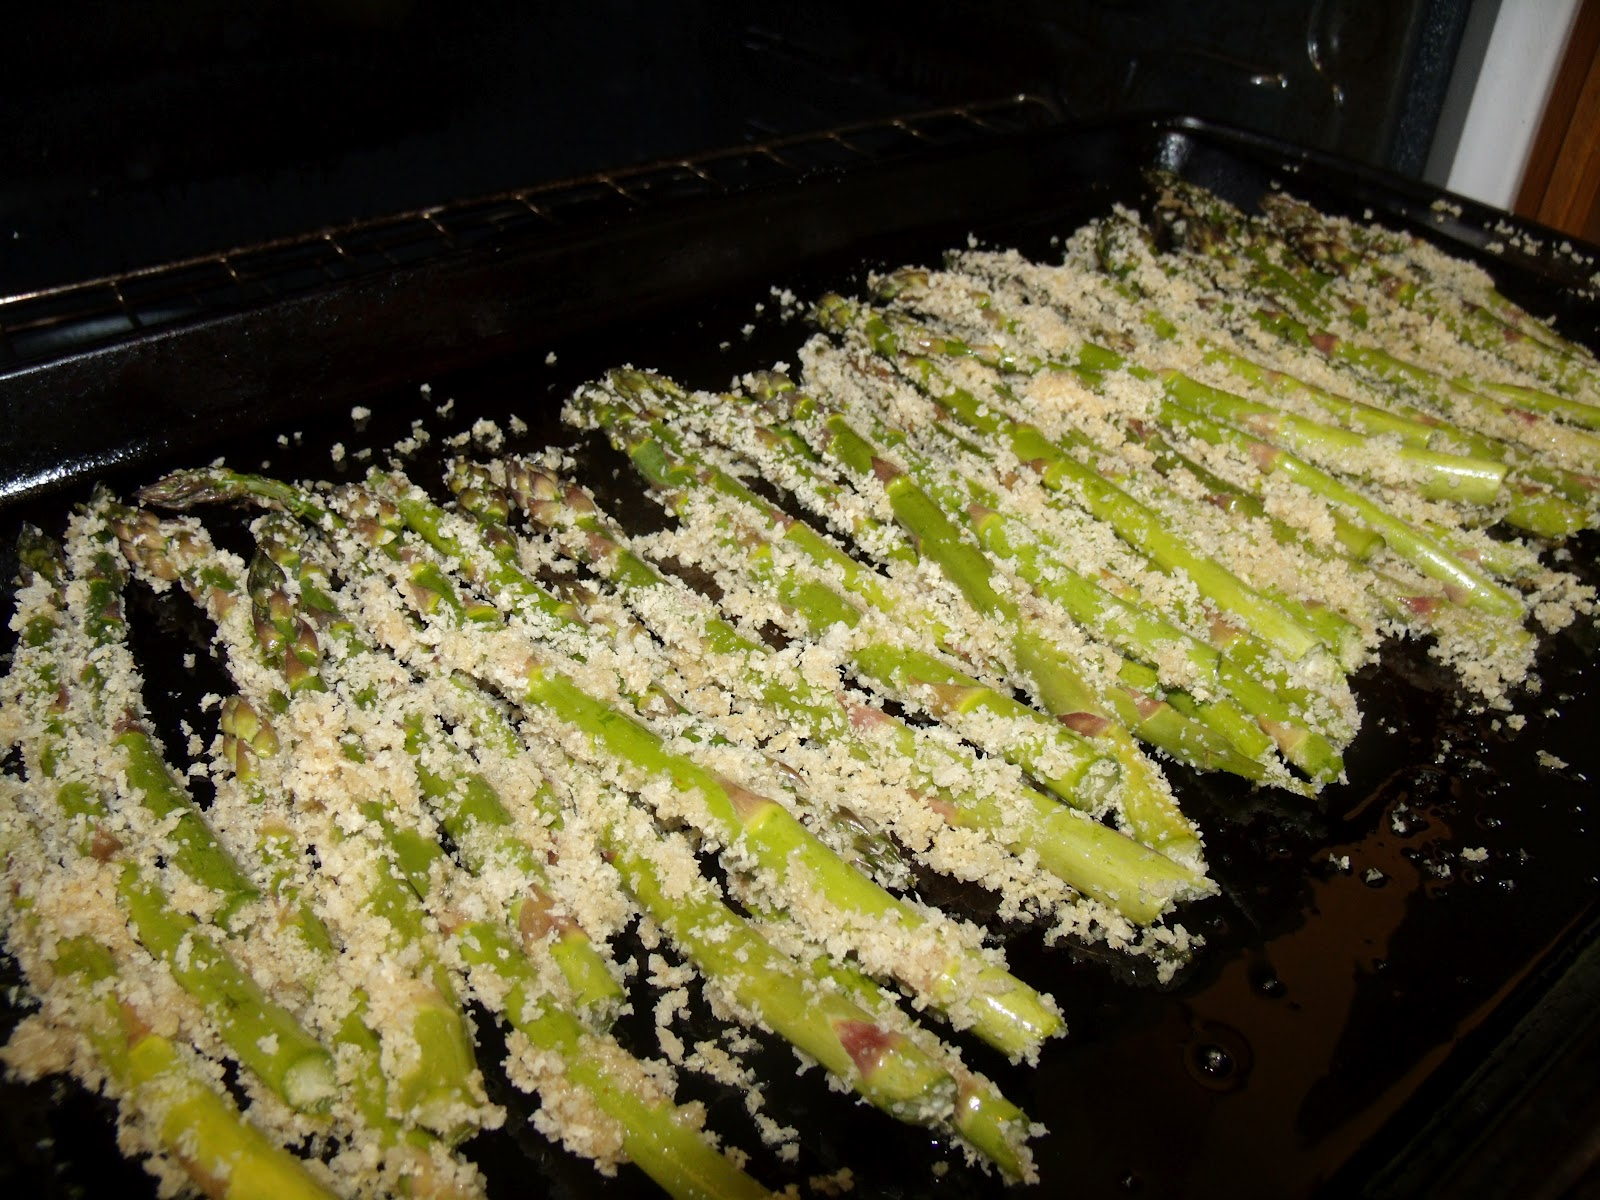 Candy Likes To Cook: Honey Mustard Corned Beef & Breaded Asparagus